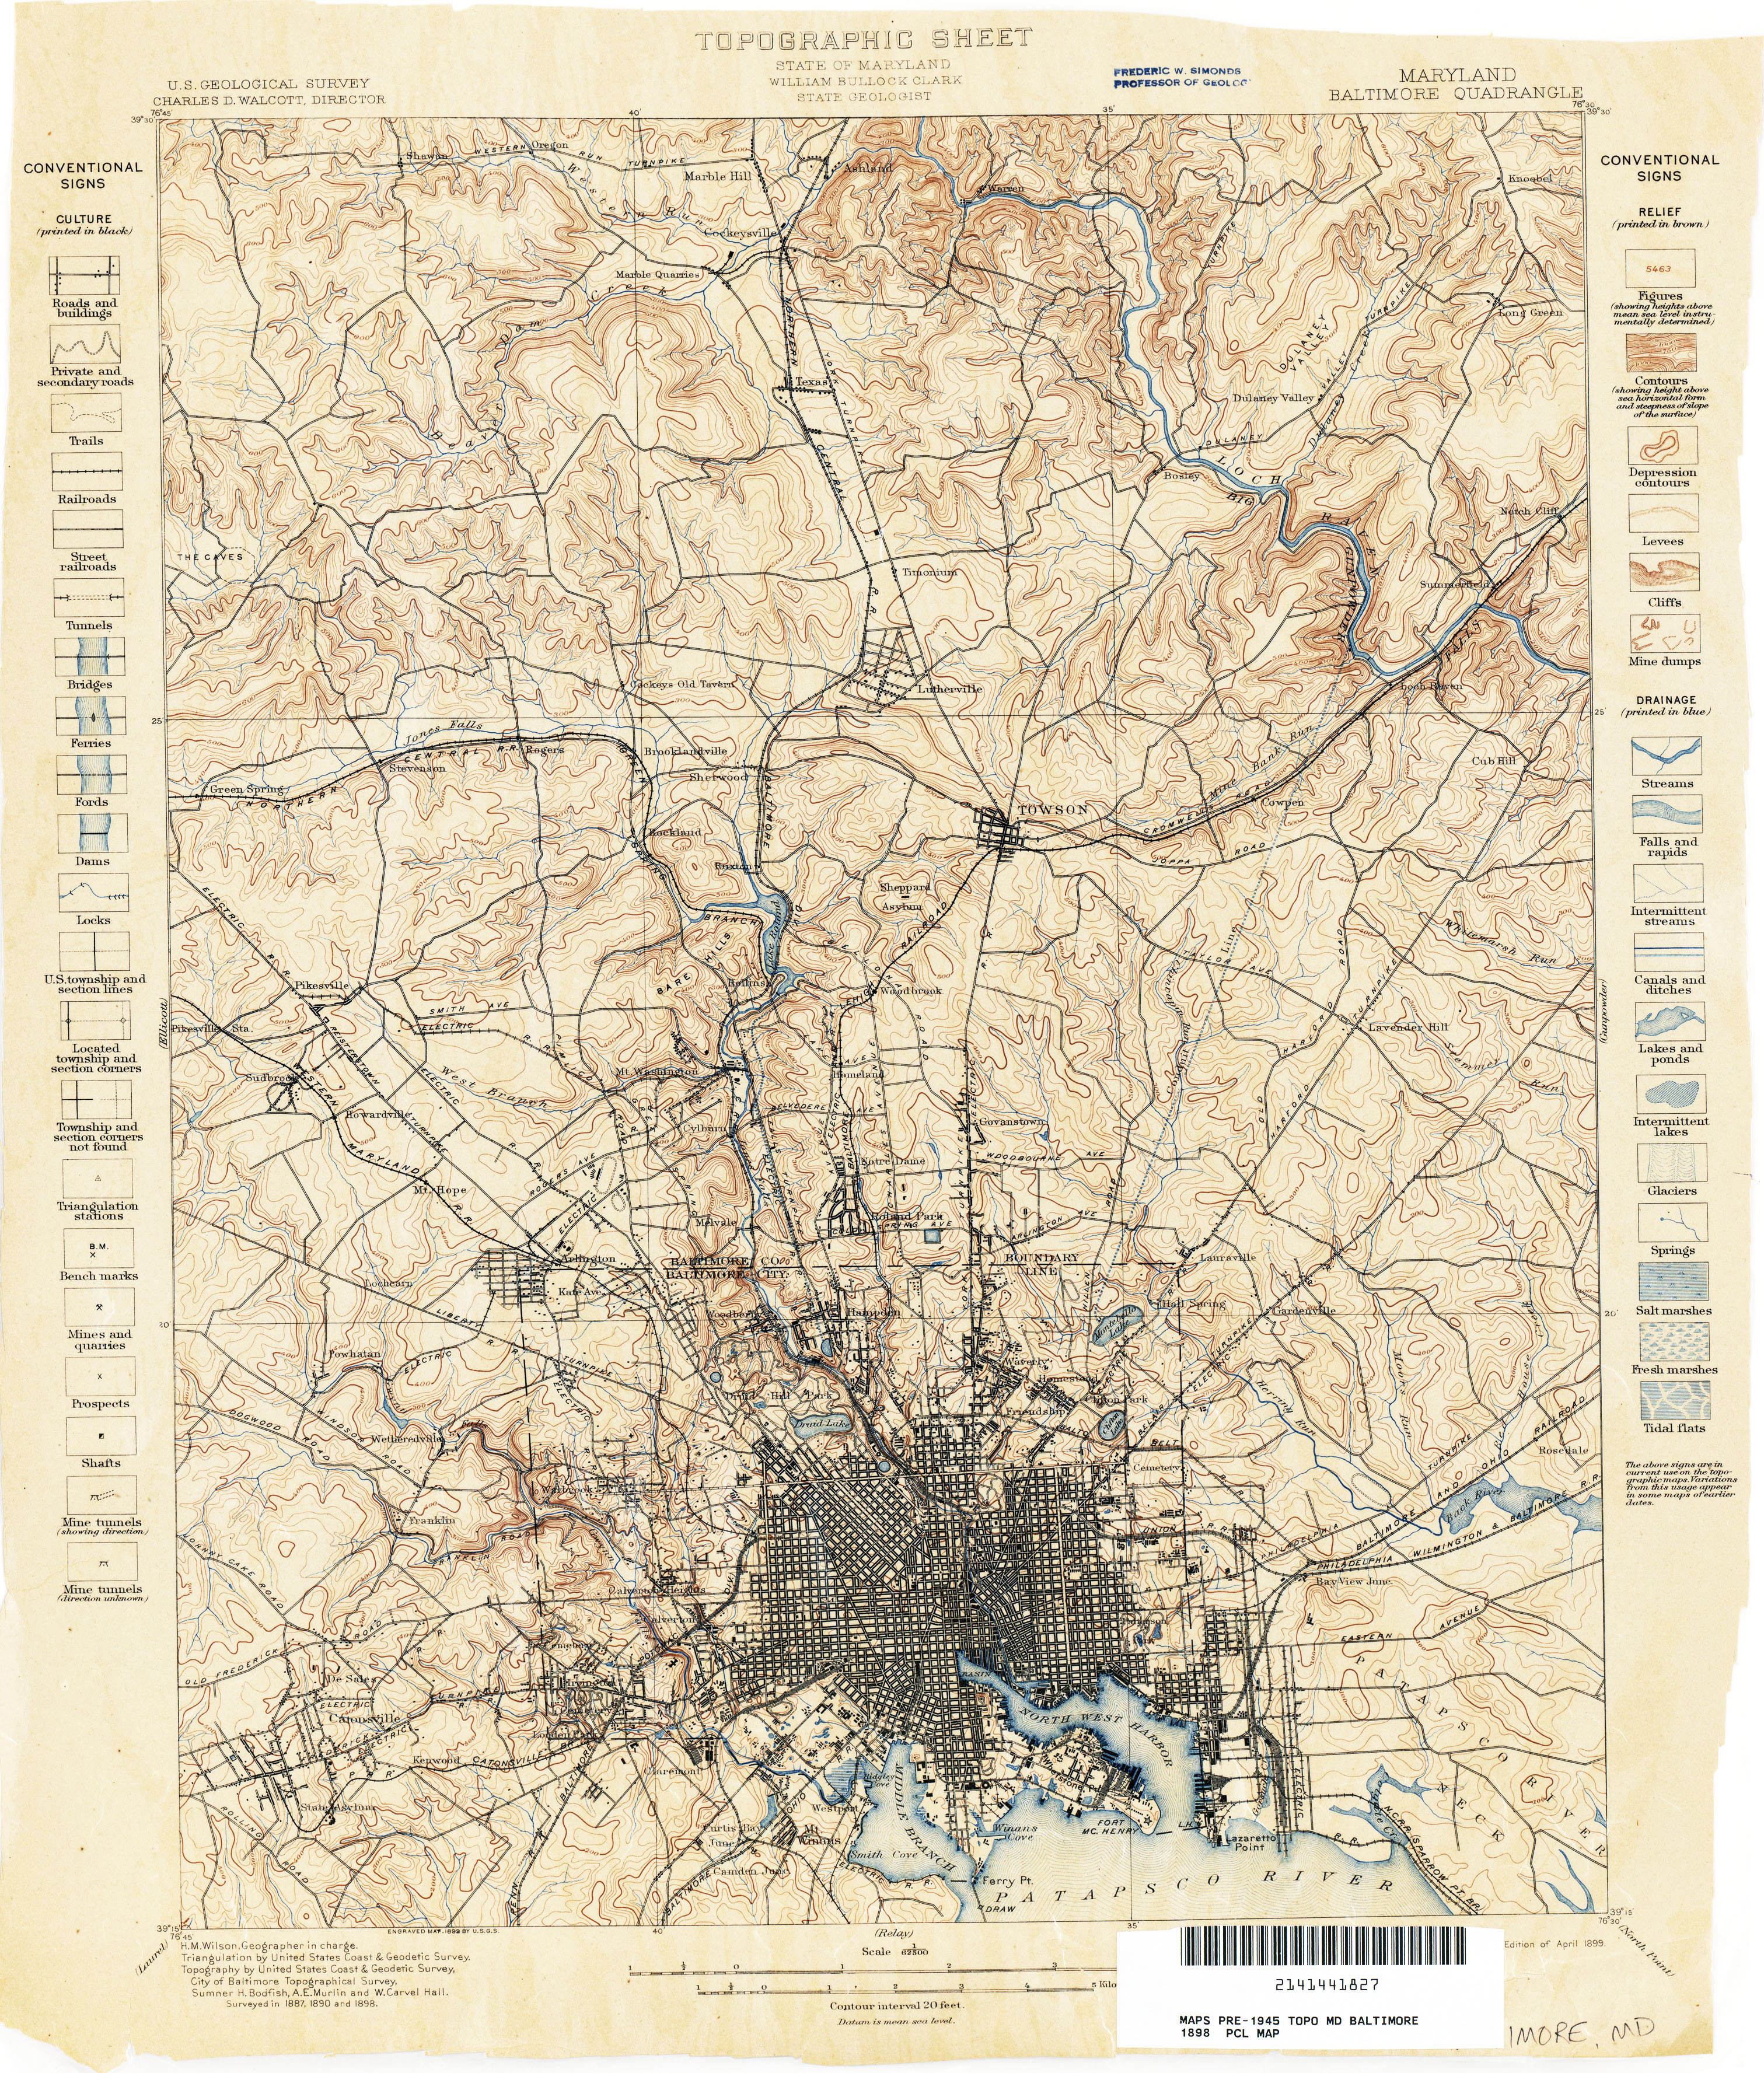 Maryland Historical Topographic Maps - Perry-Castañeda Map ...